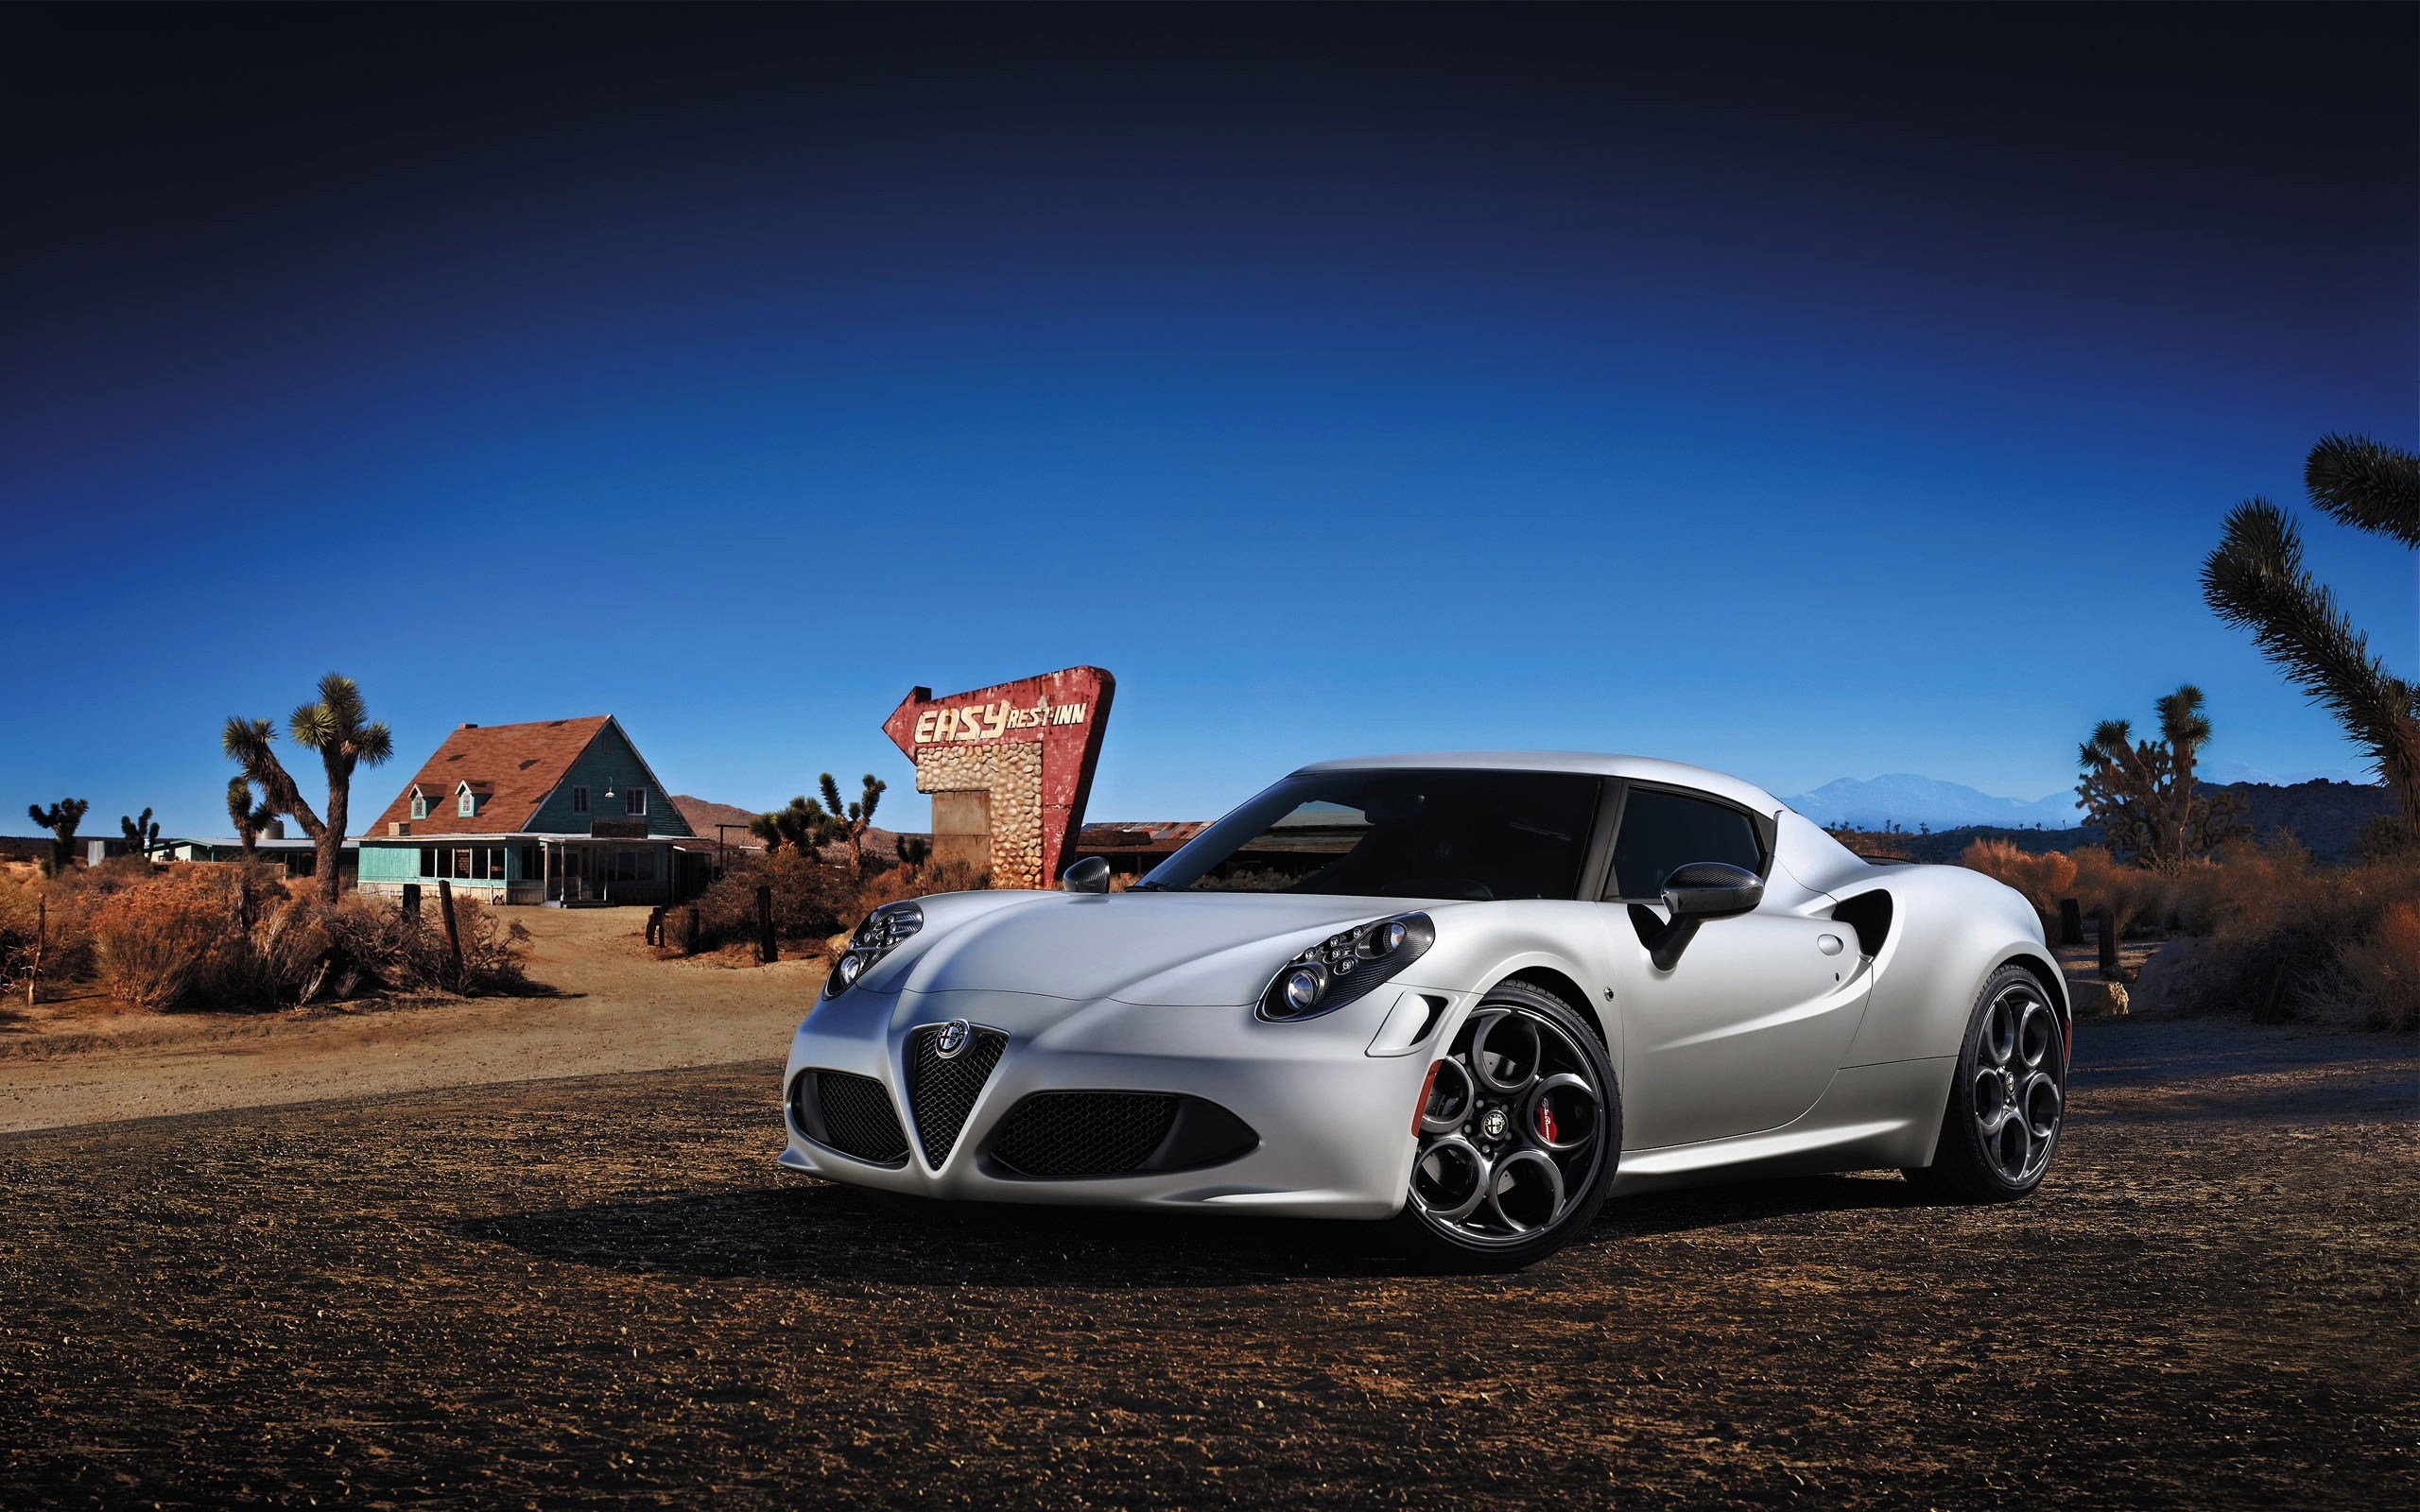 Latest 2014 Alfa Romeo 4C Launch Edition Wallpaper Hd Car Free Download